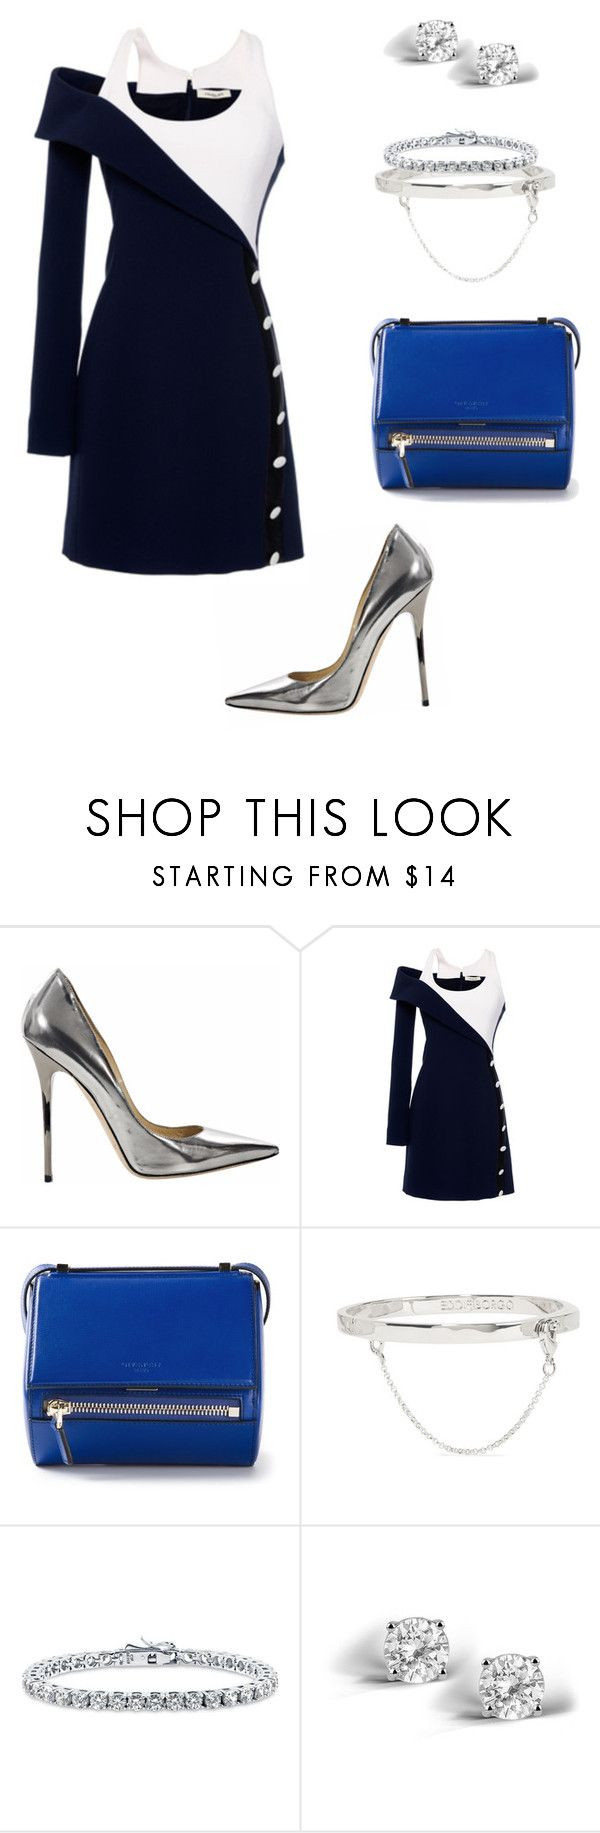 """""""Untitled #610"""" by khloodalshehri ❤ liked on Polyvore featuring Jimmy Choo, Thierry Mugler, Givenchy, Eddie Borgo, BERRICLE and Glitzy Rocks"""